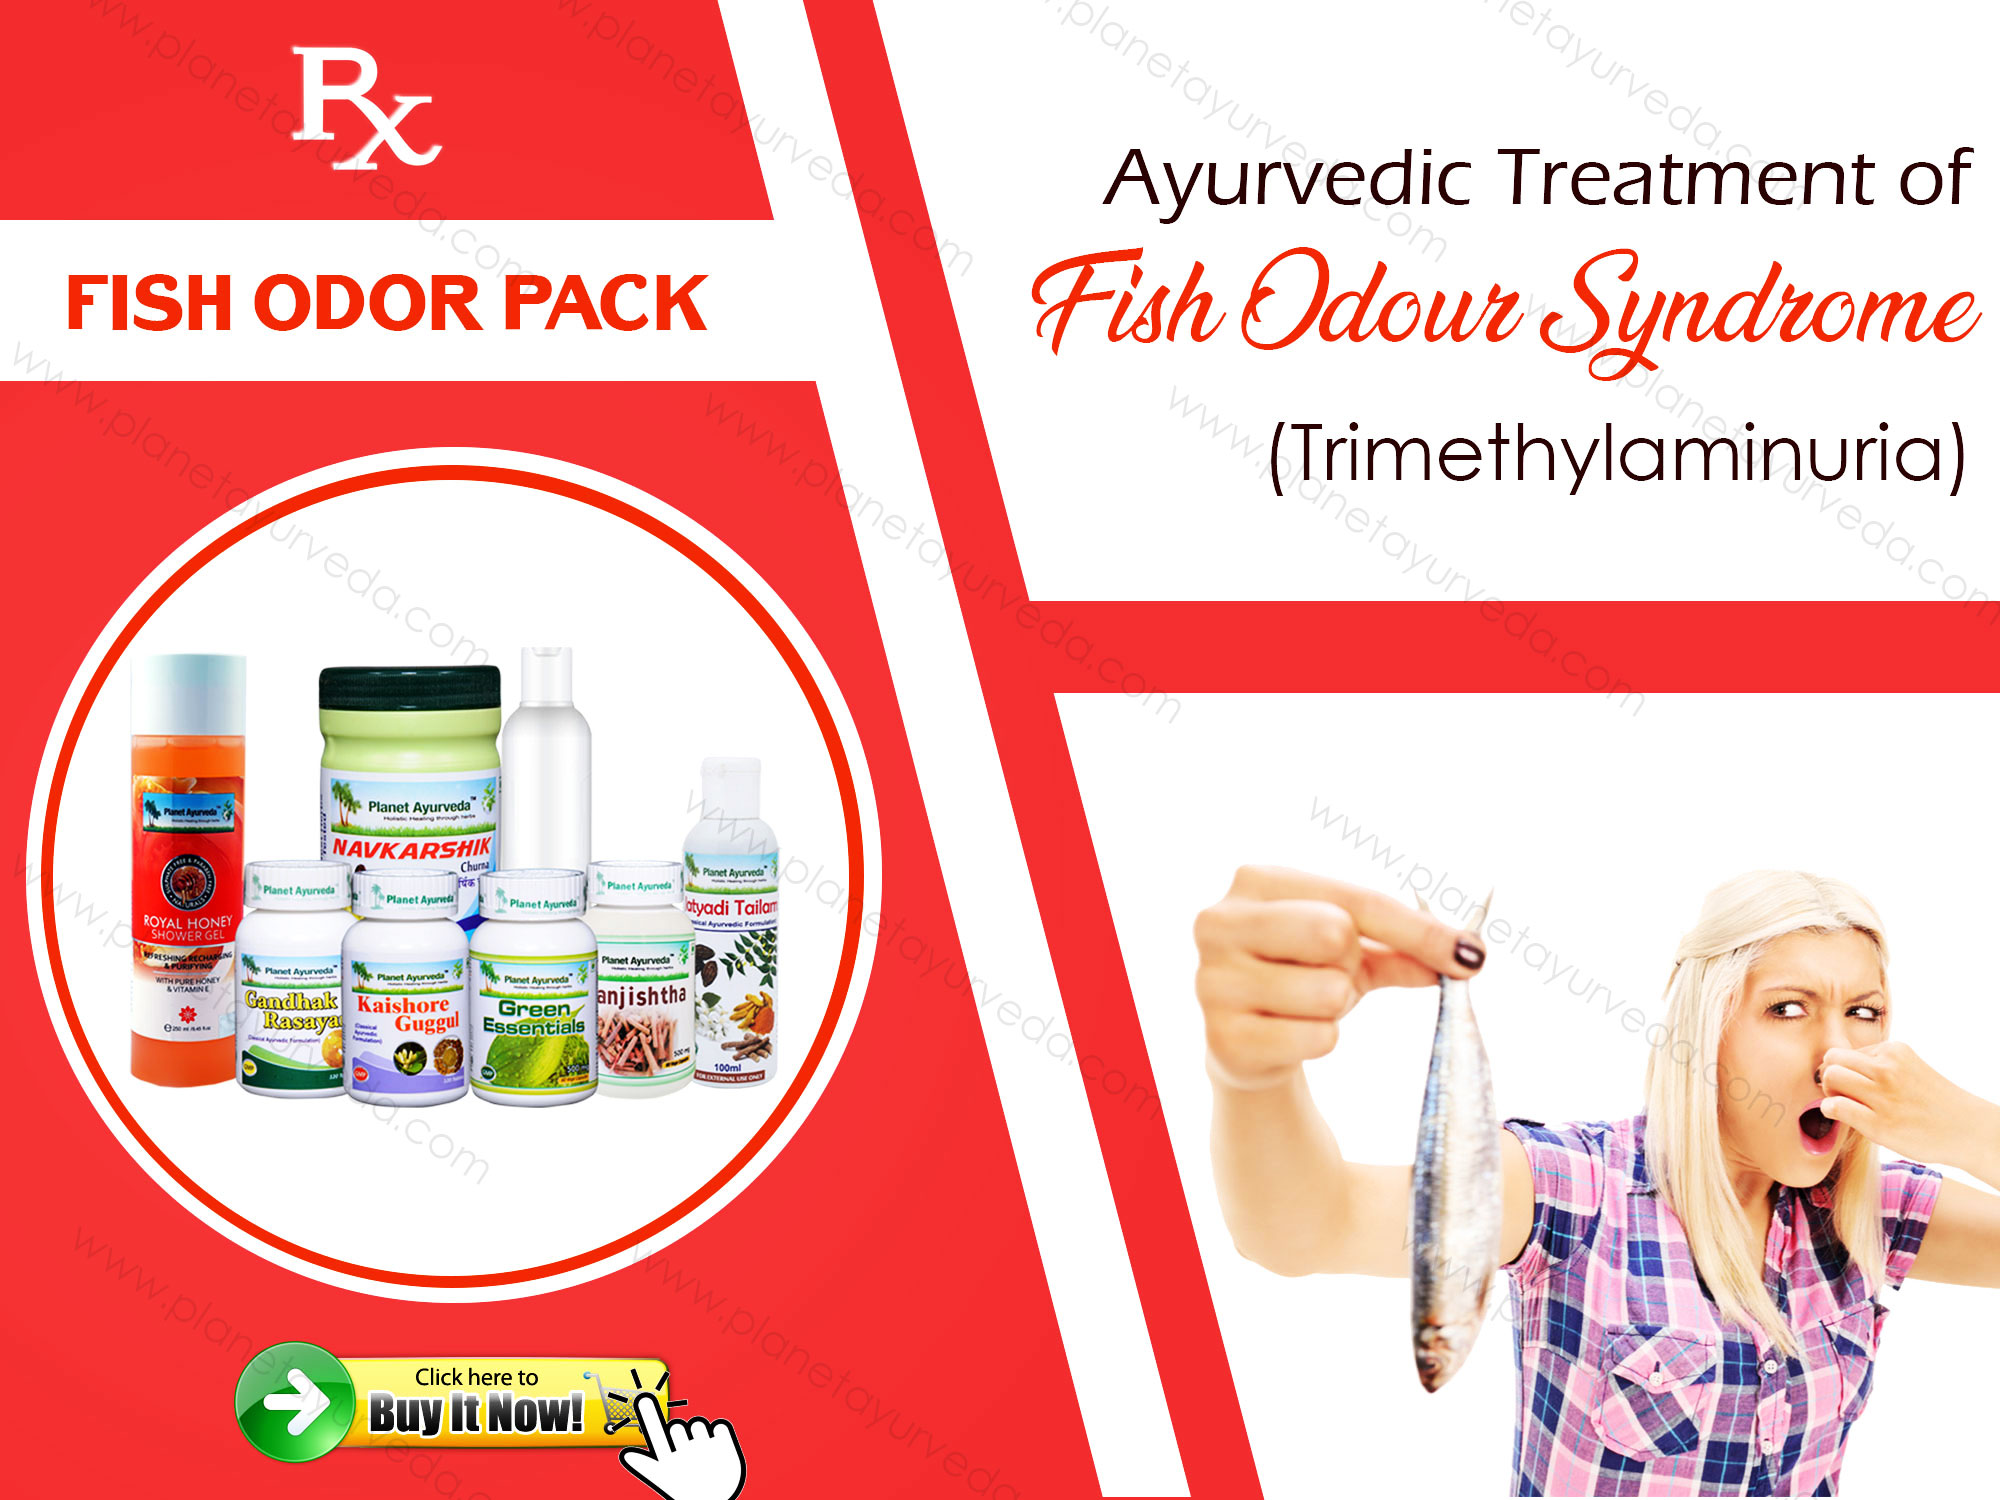 Treatment-of-Fish-Odour-Syndrome-(Trimethylaminuria)